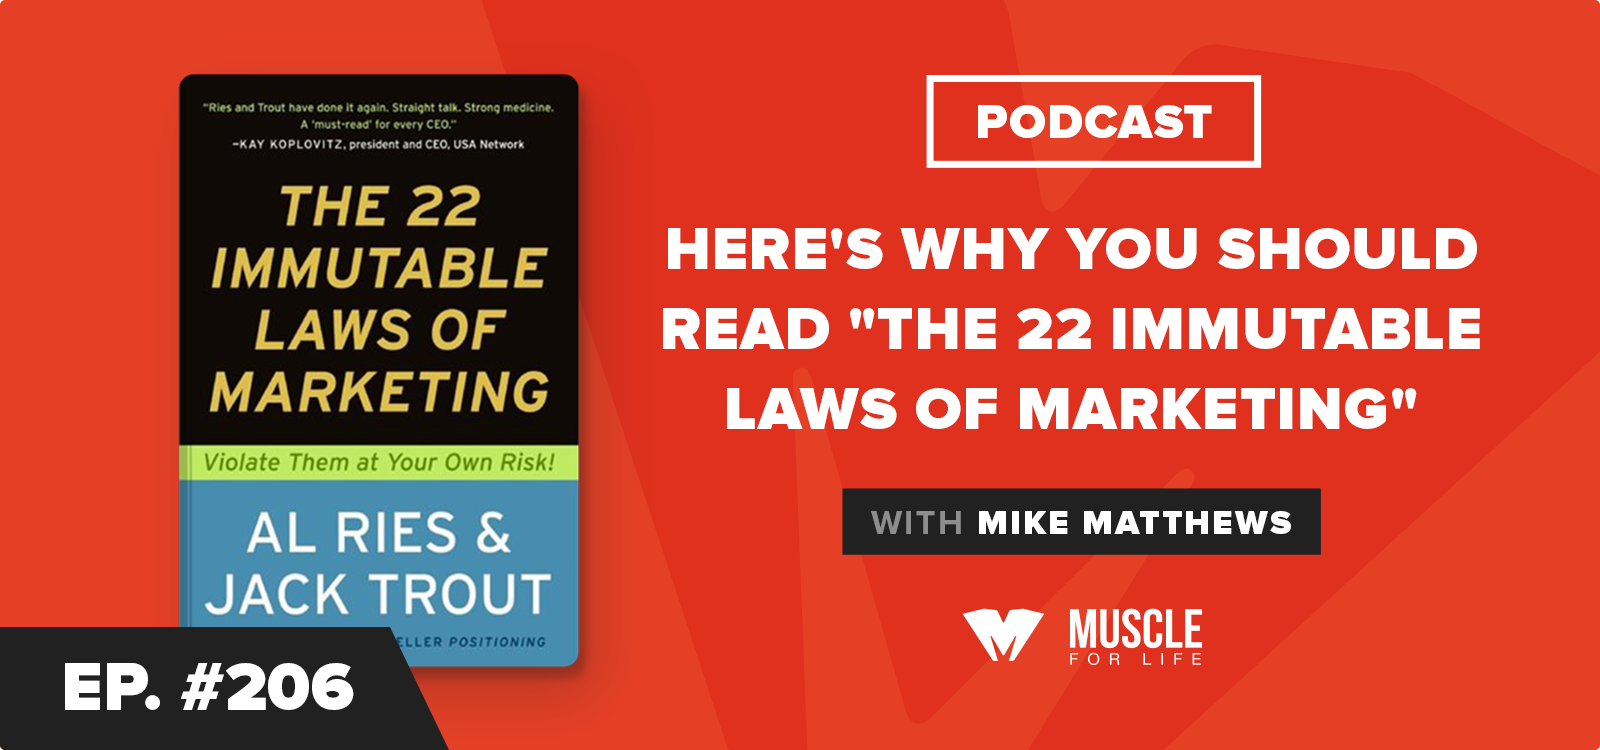 """Here's Why You Should Read """"The 22 Immutable Laws of Marketing"""""""